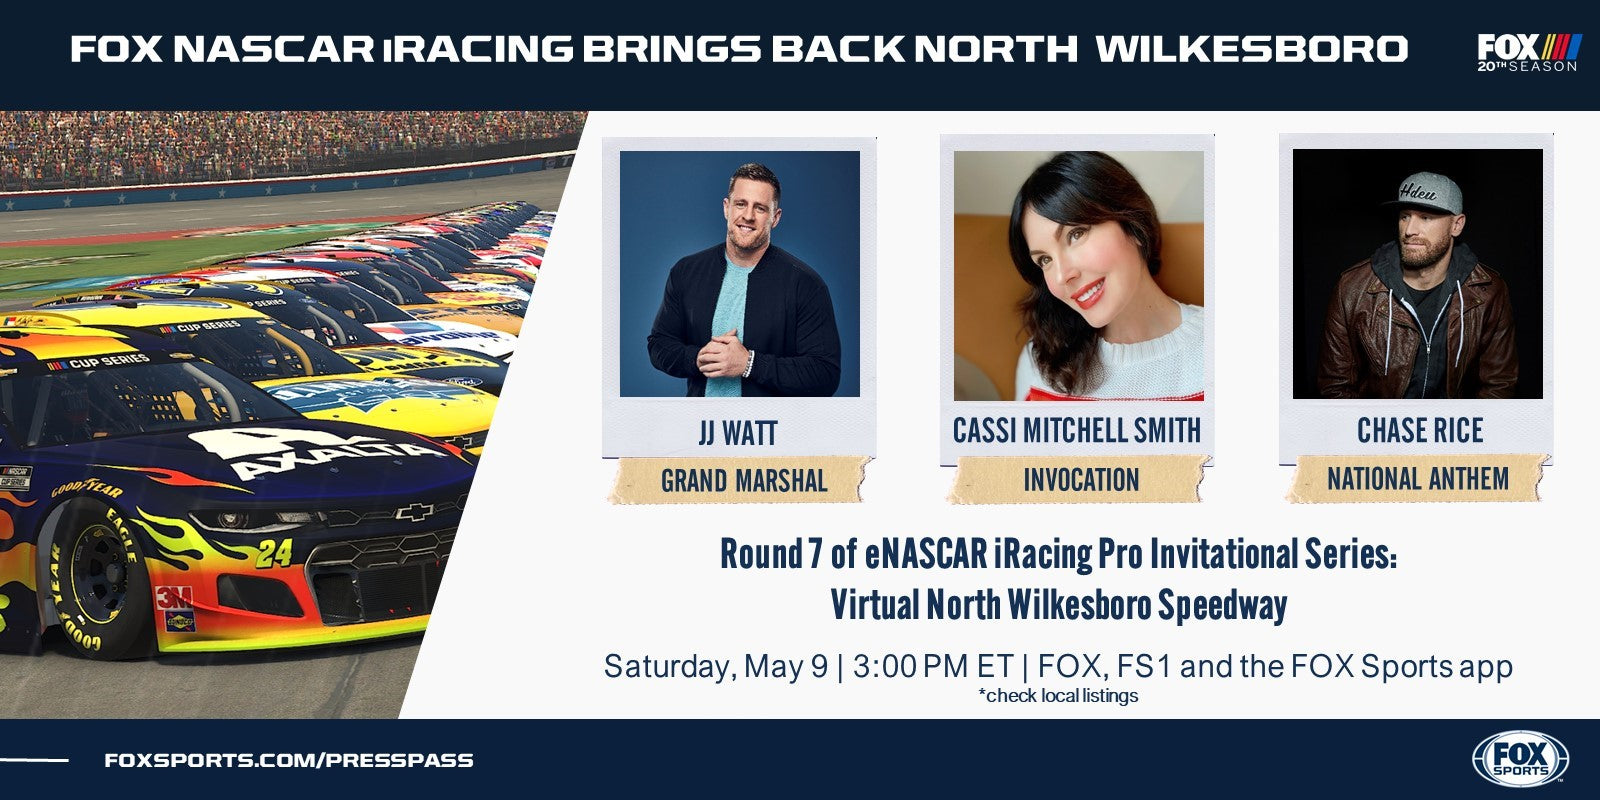 Jeff Gordon to Drive in Saturday's eNASCAR iRacing Pro Invitational Series Event at Virtual North Wilkesboro Speedway